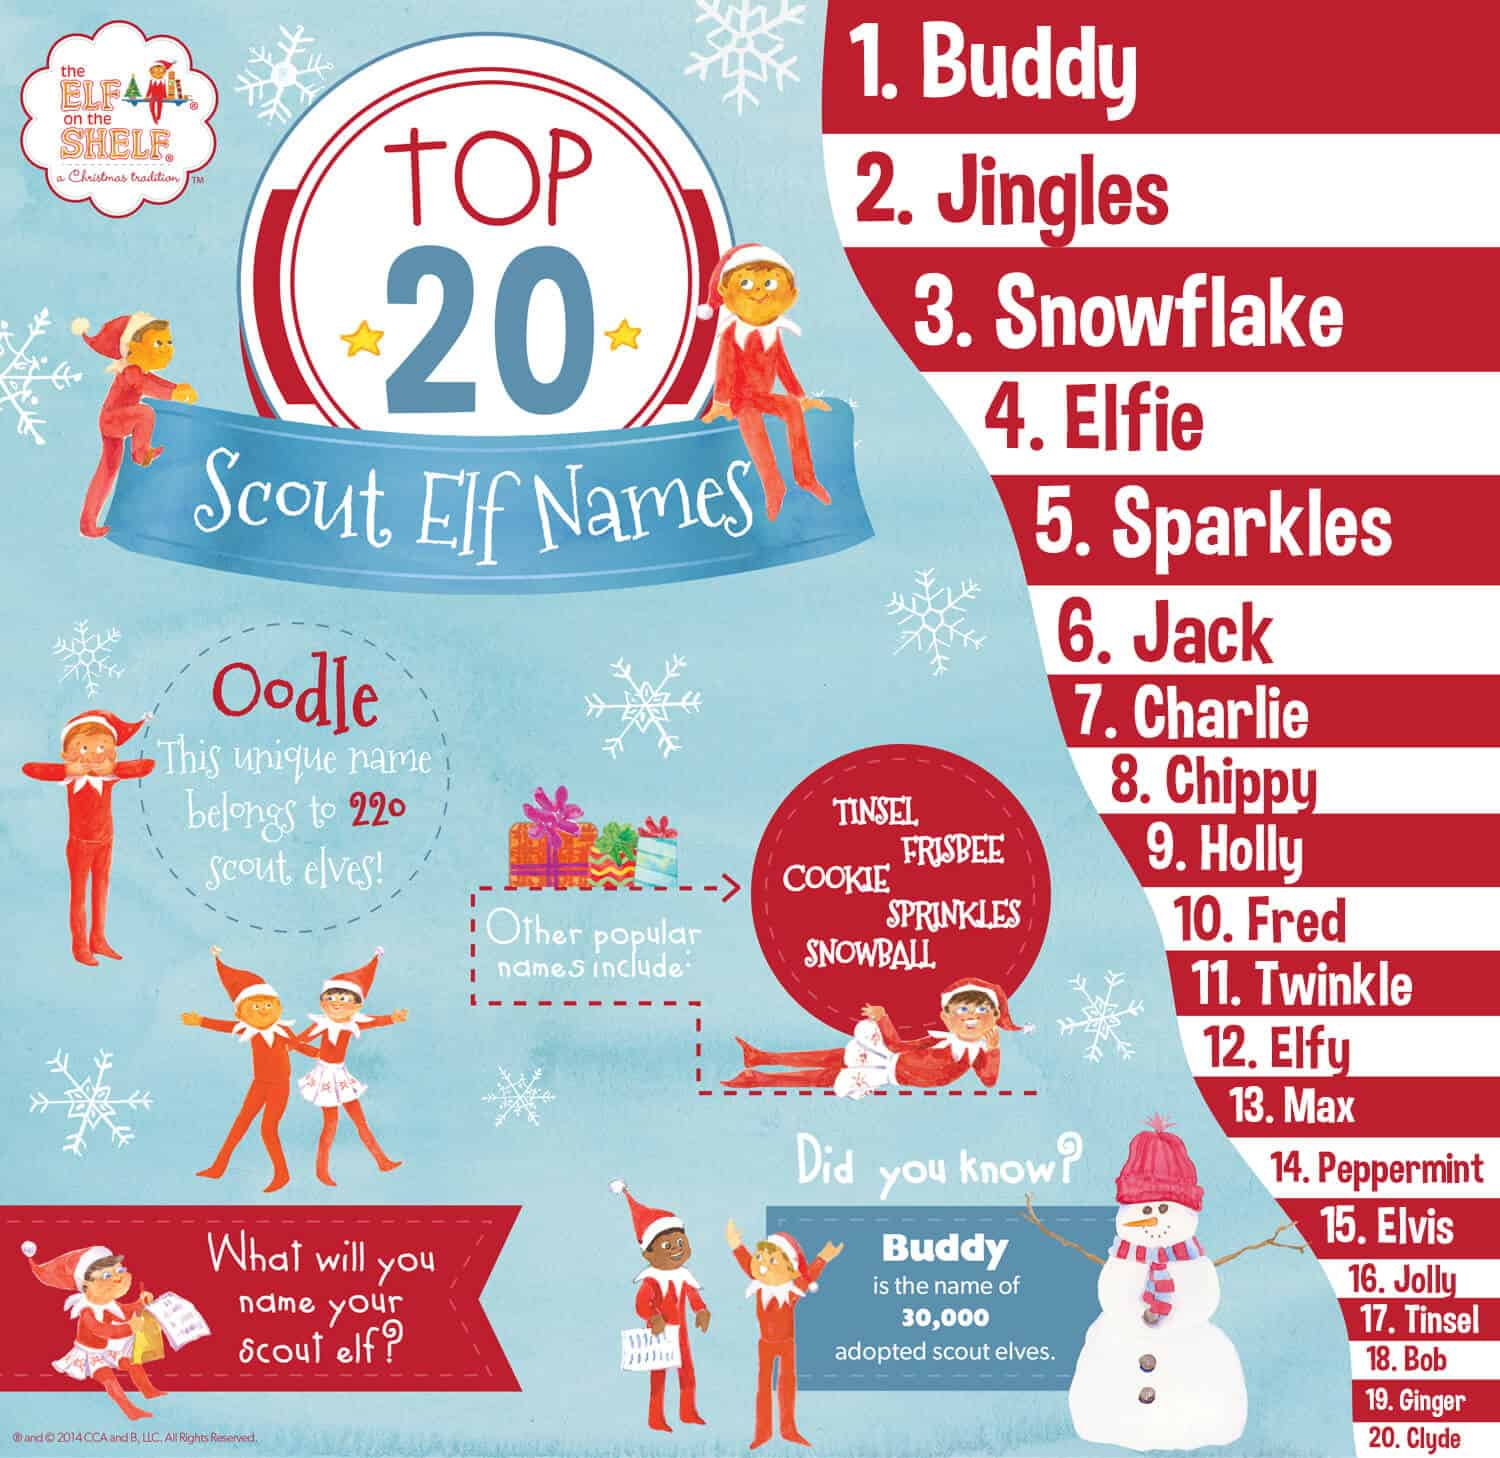 Top 20 Elf Names